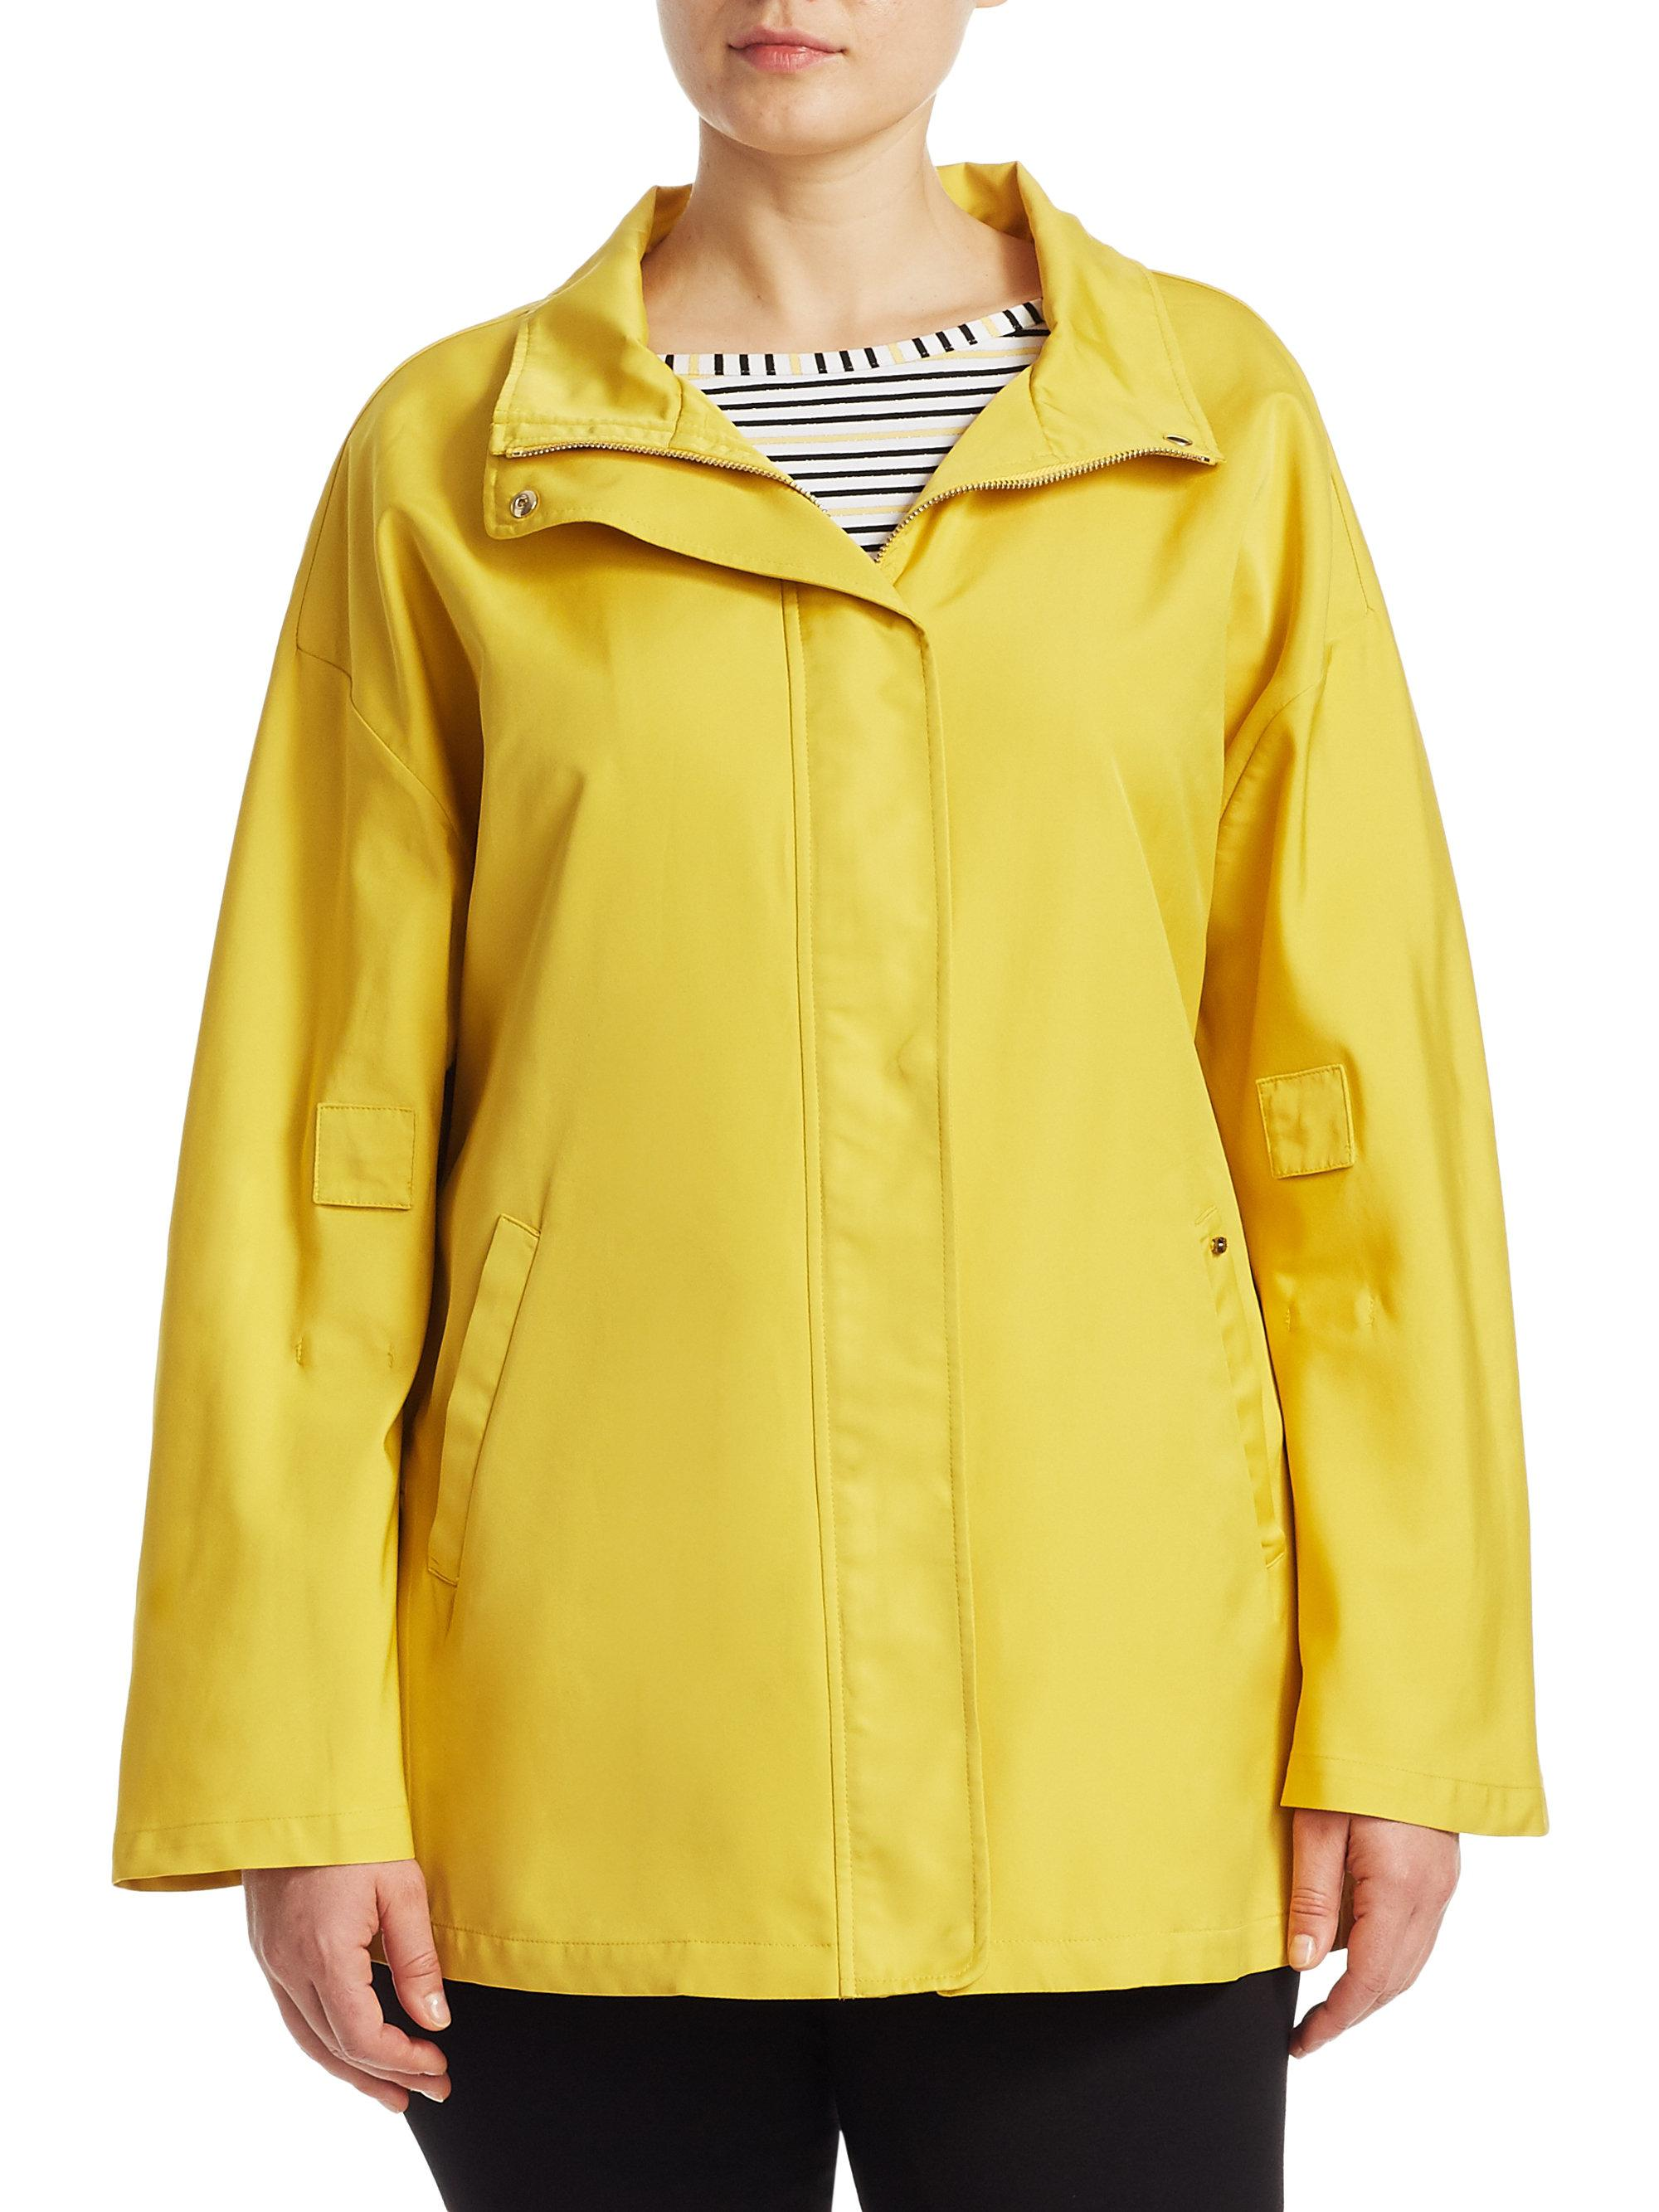 68f7fe2fc6e Gallery. Previously sold at  Saks Fifth Avenue · Women s Rain Coats Women s  Hooded ...